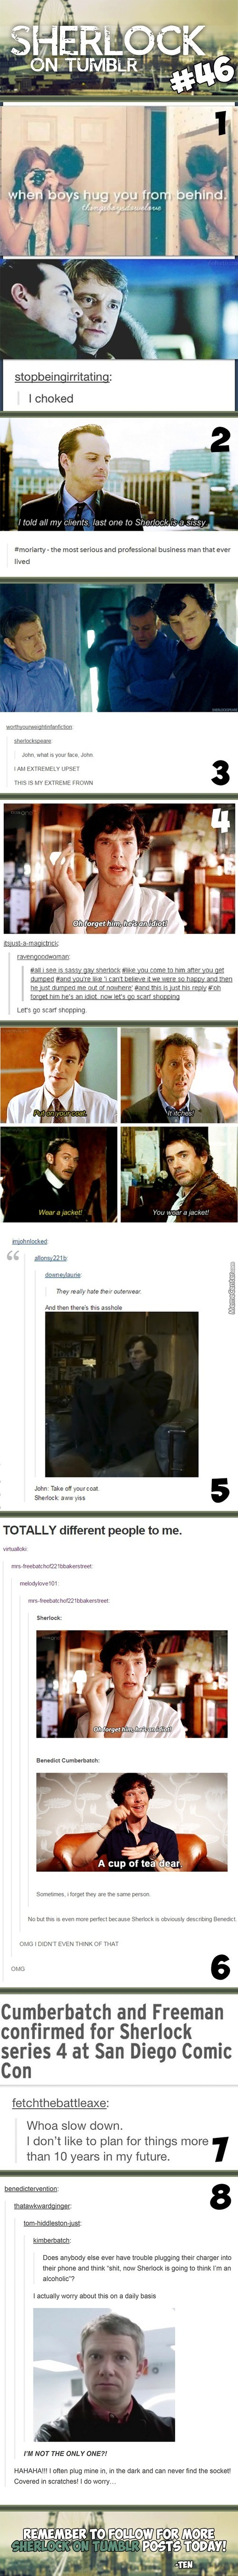 Sherlock On Tumblr #46